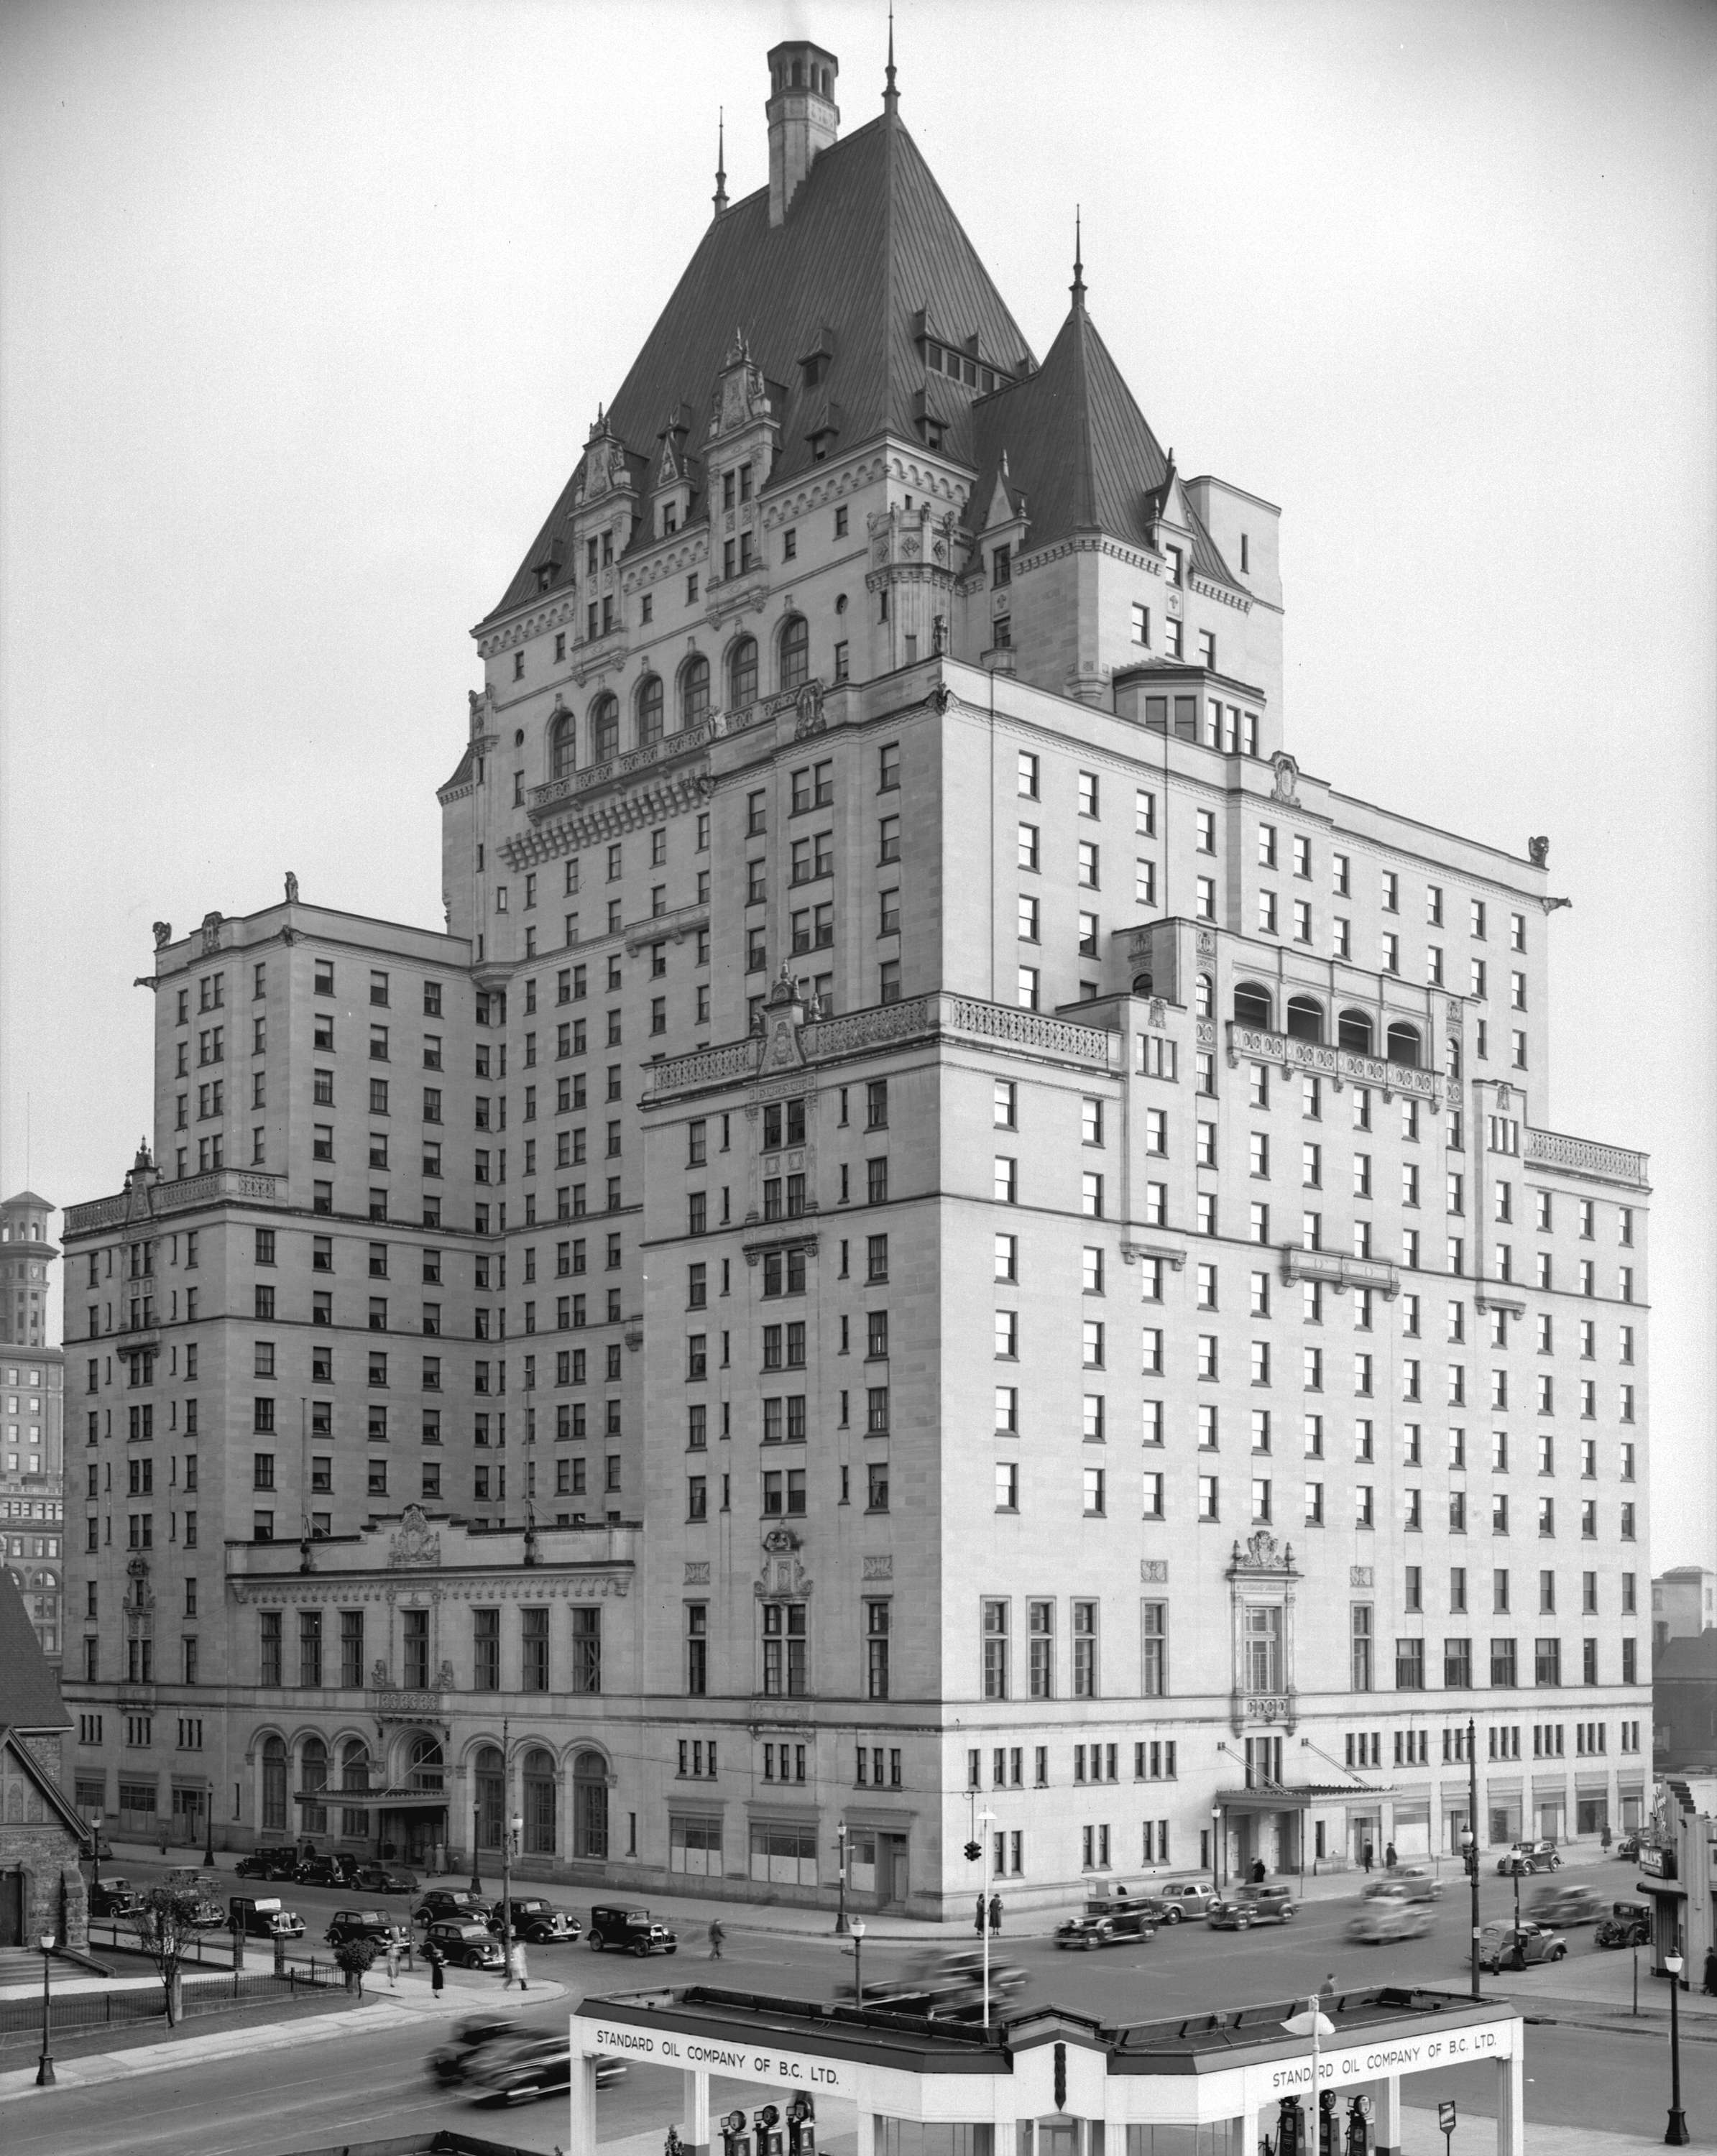 The Fairmont Hotel Vancouver in 1939 (Vancouver Archives)